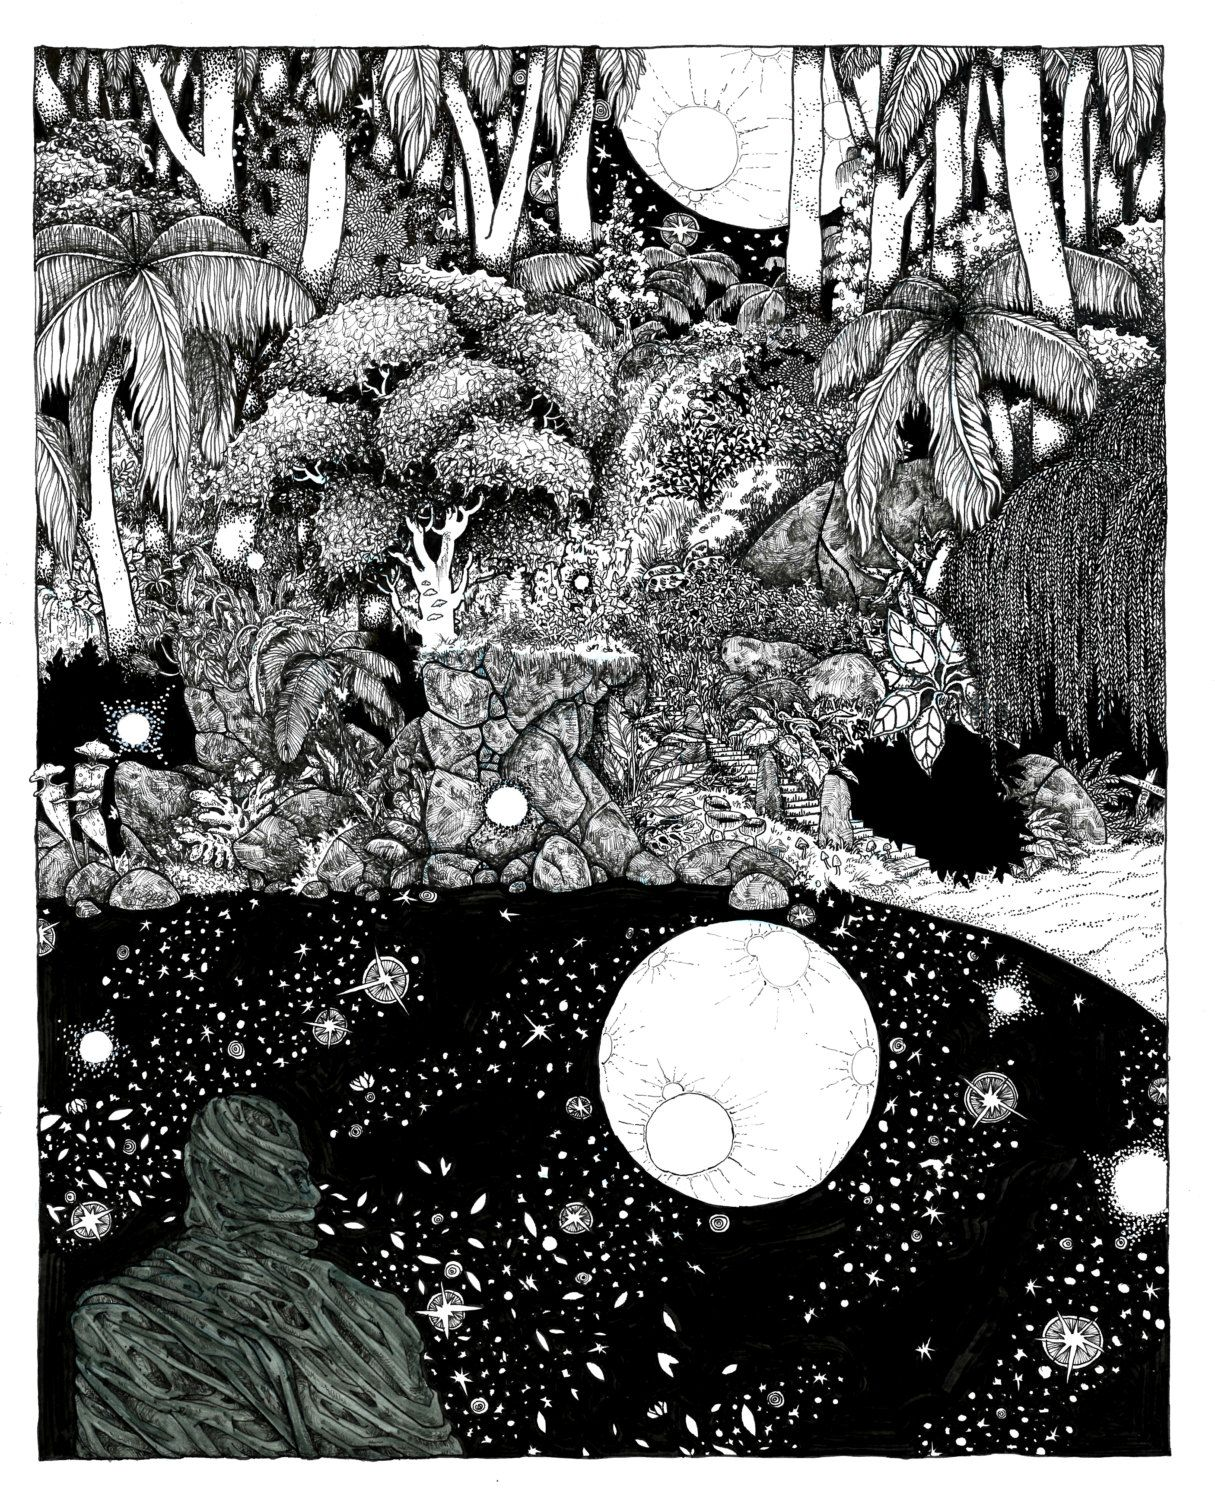 Dreaming pool of booya moon pen and ink black and white